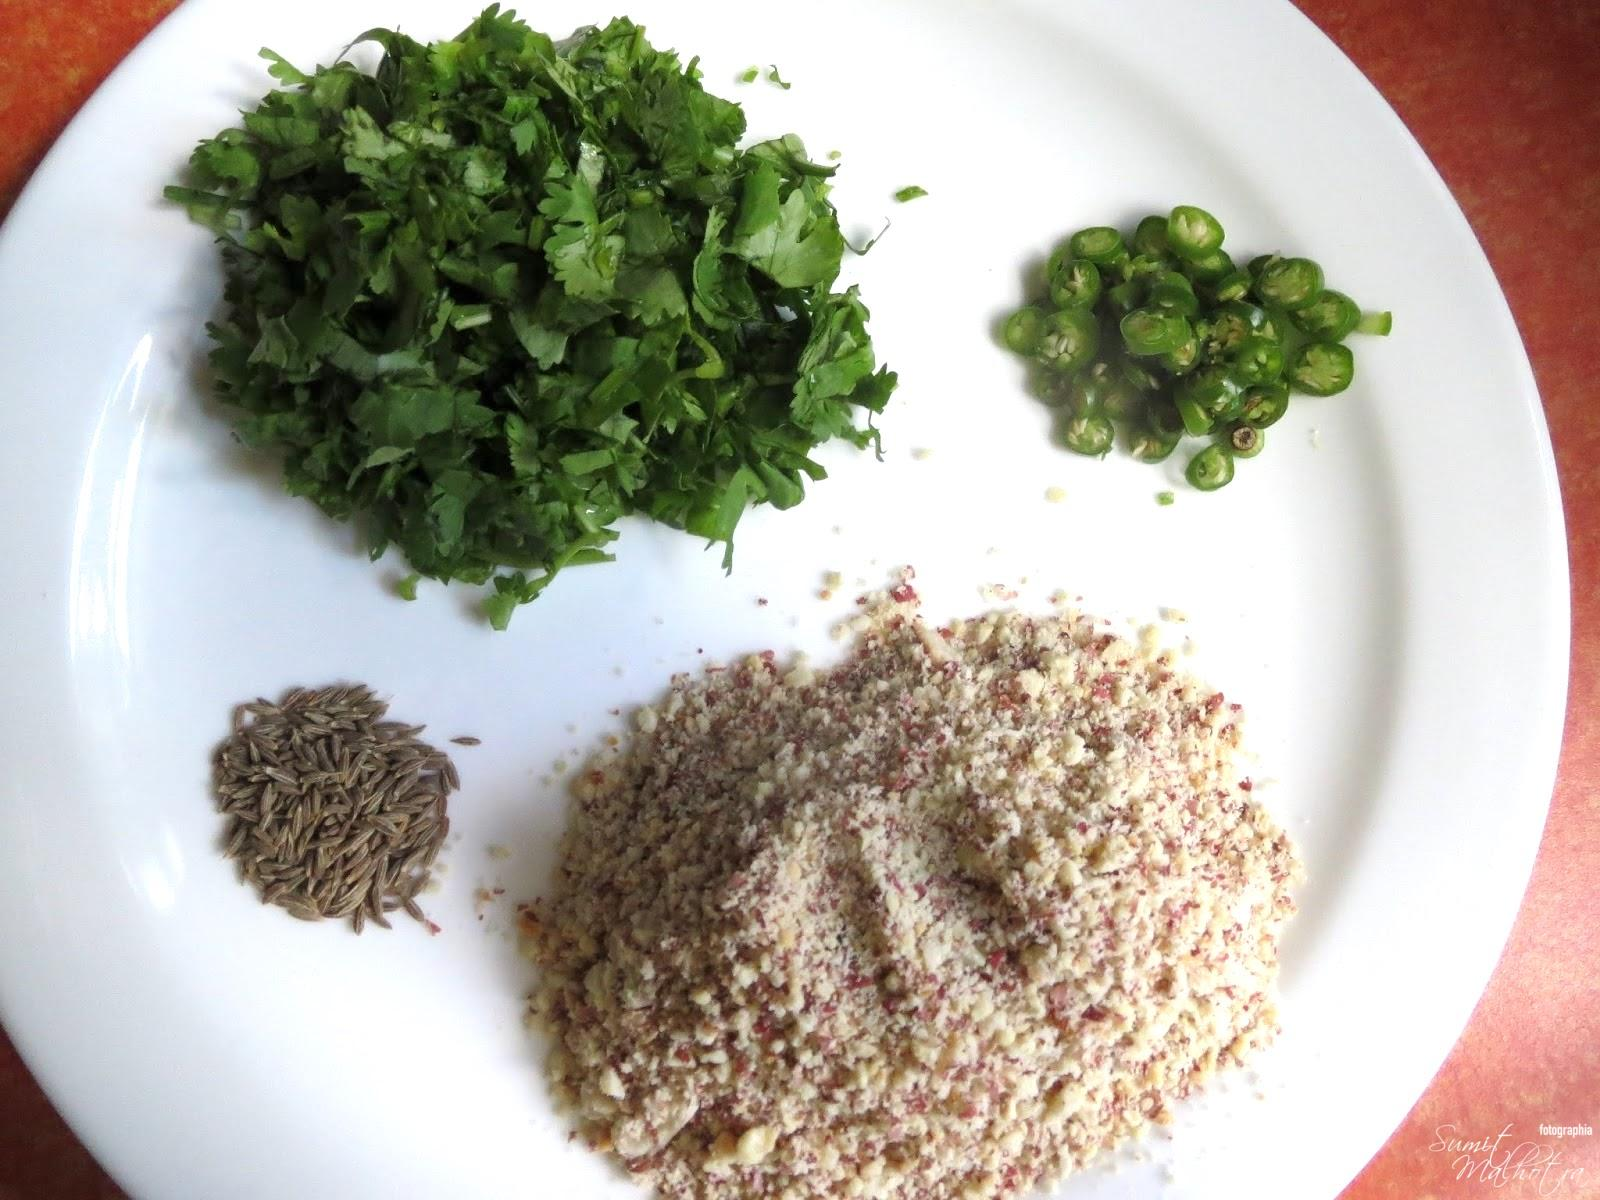 Ingredients for Sabudana Vada or Sabu Vada